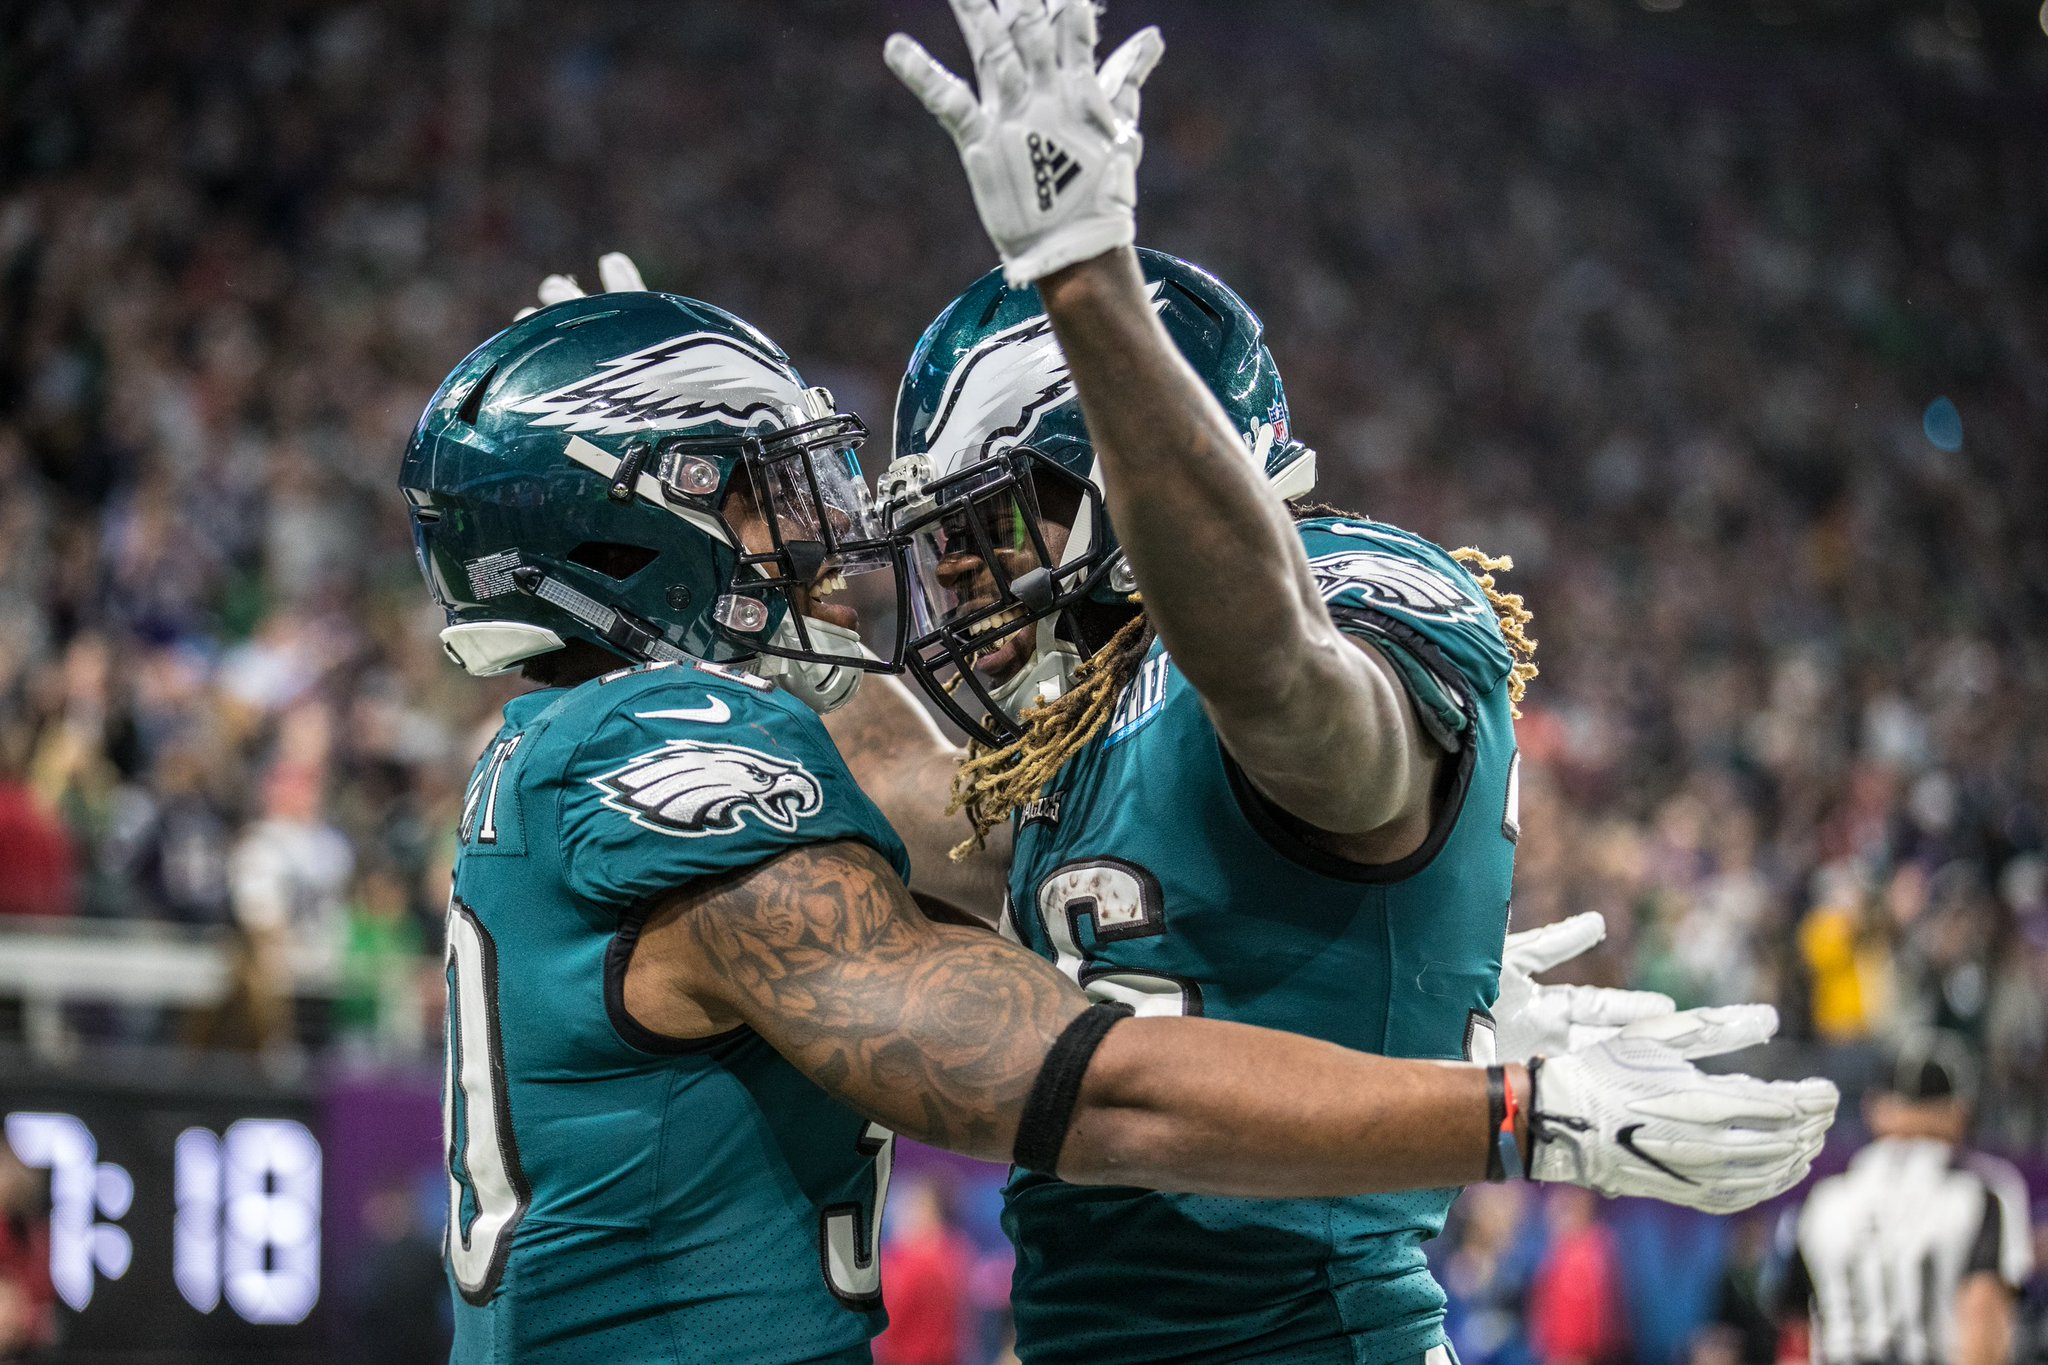 #FlyEaglesFly https://t.co/REtPWoh5a7